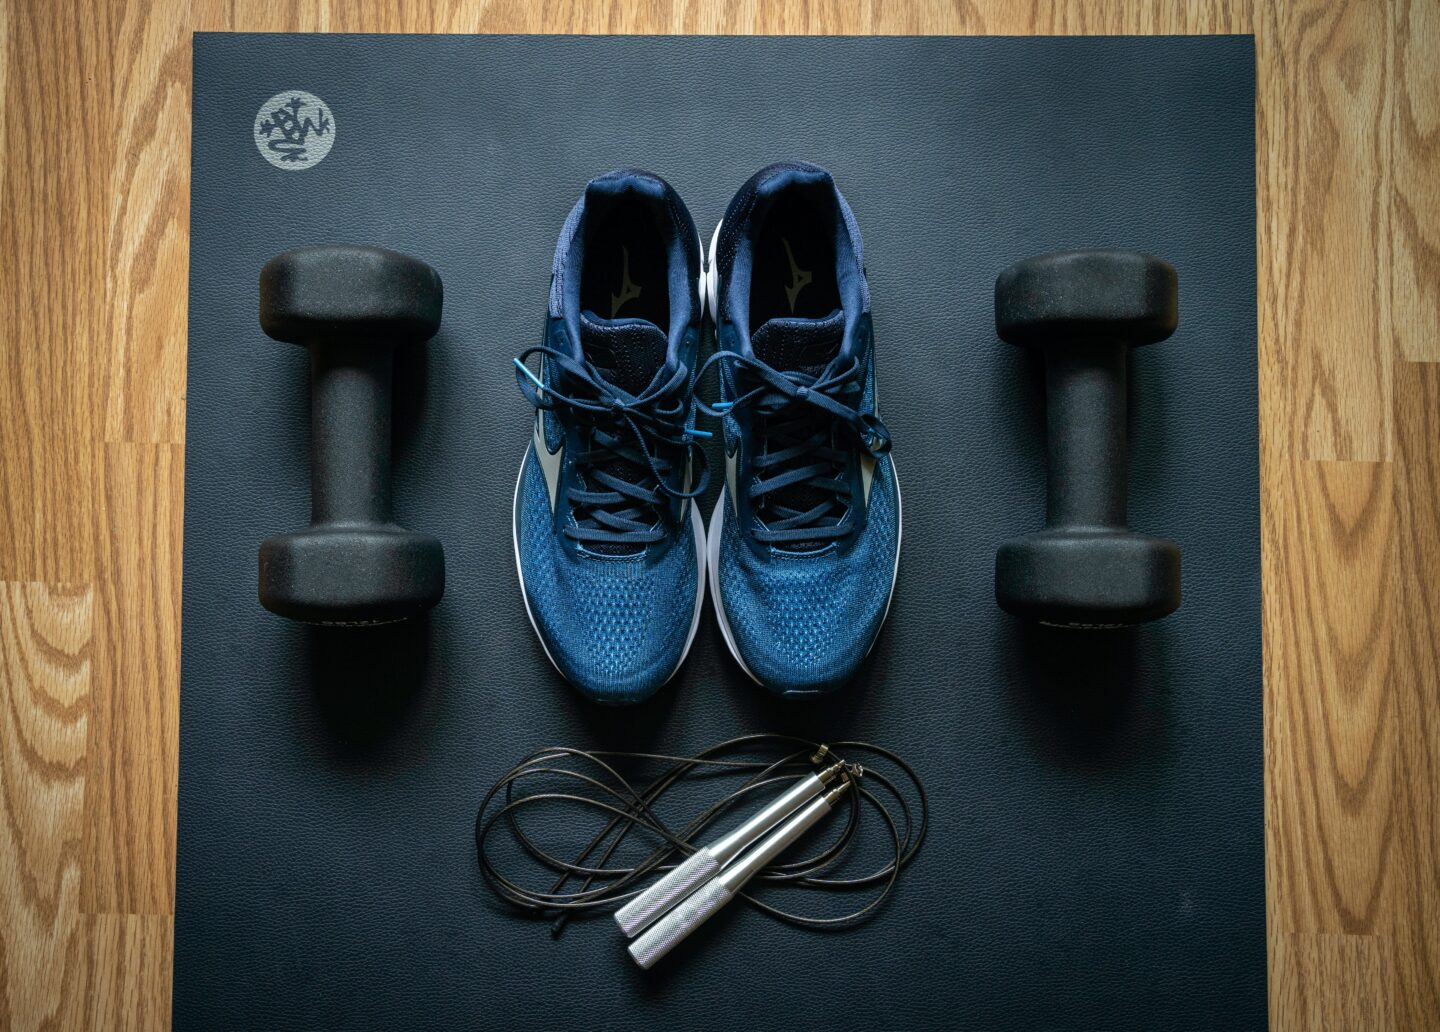 free weights, sneakers and jump rope